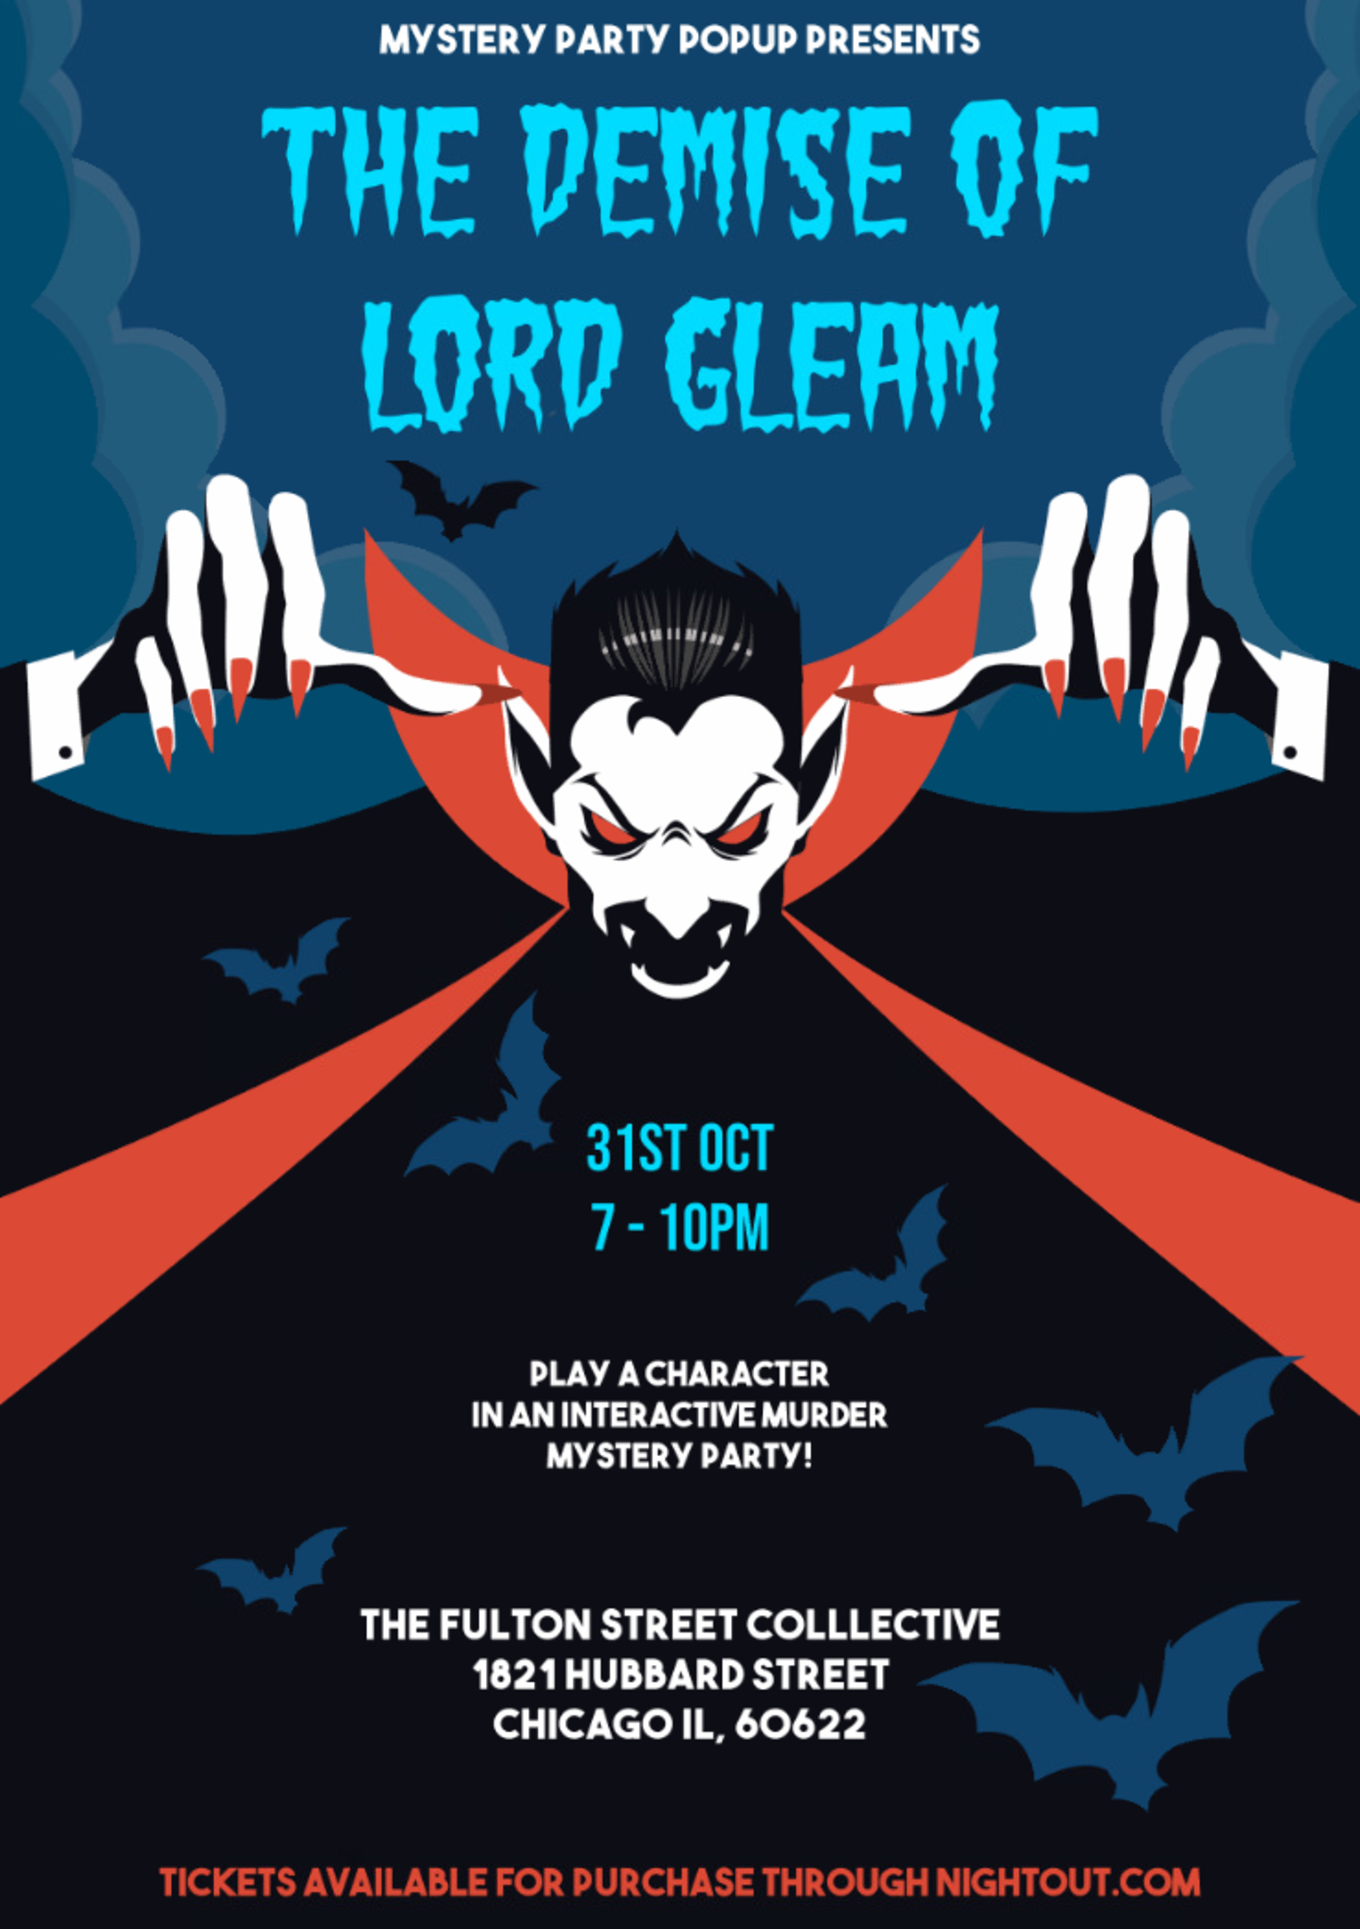 mystery party popup halloween '18 - tickets - the fulton street